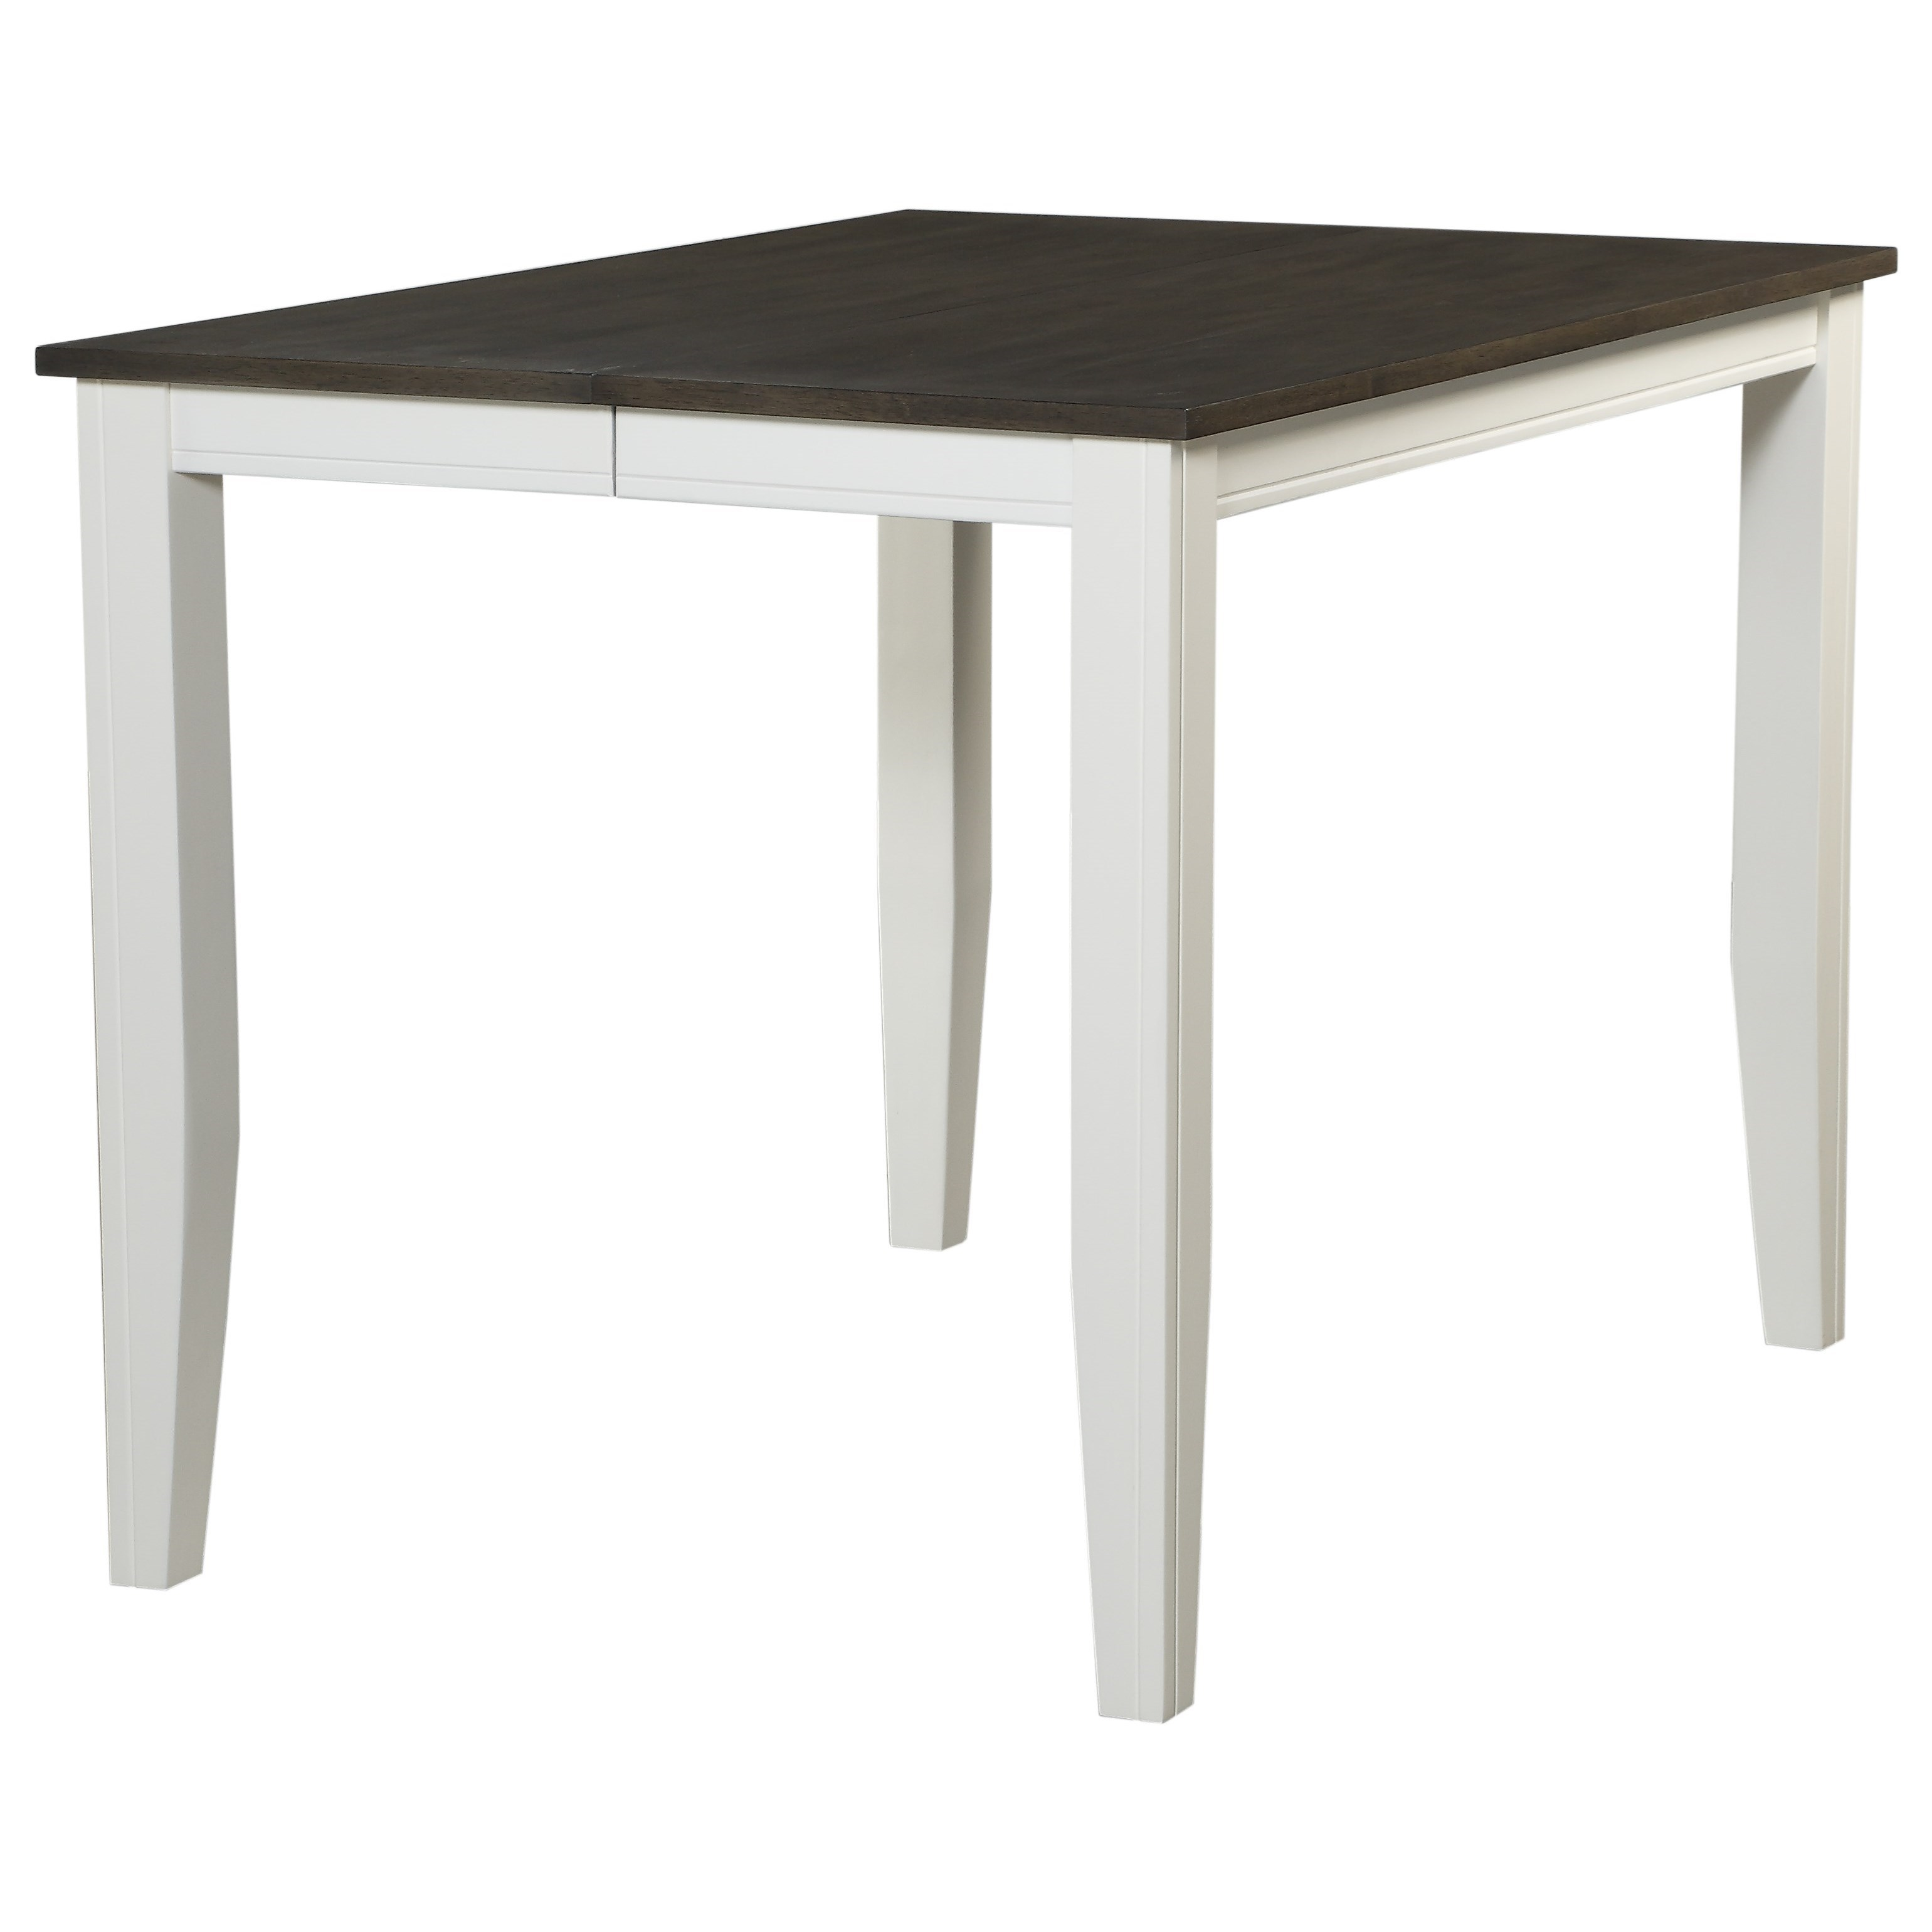 Carey White Square Counter Height Pub Table by HH at Walker's Furniture